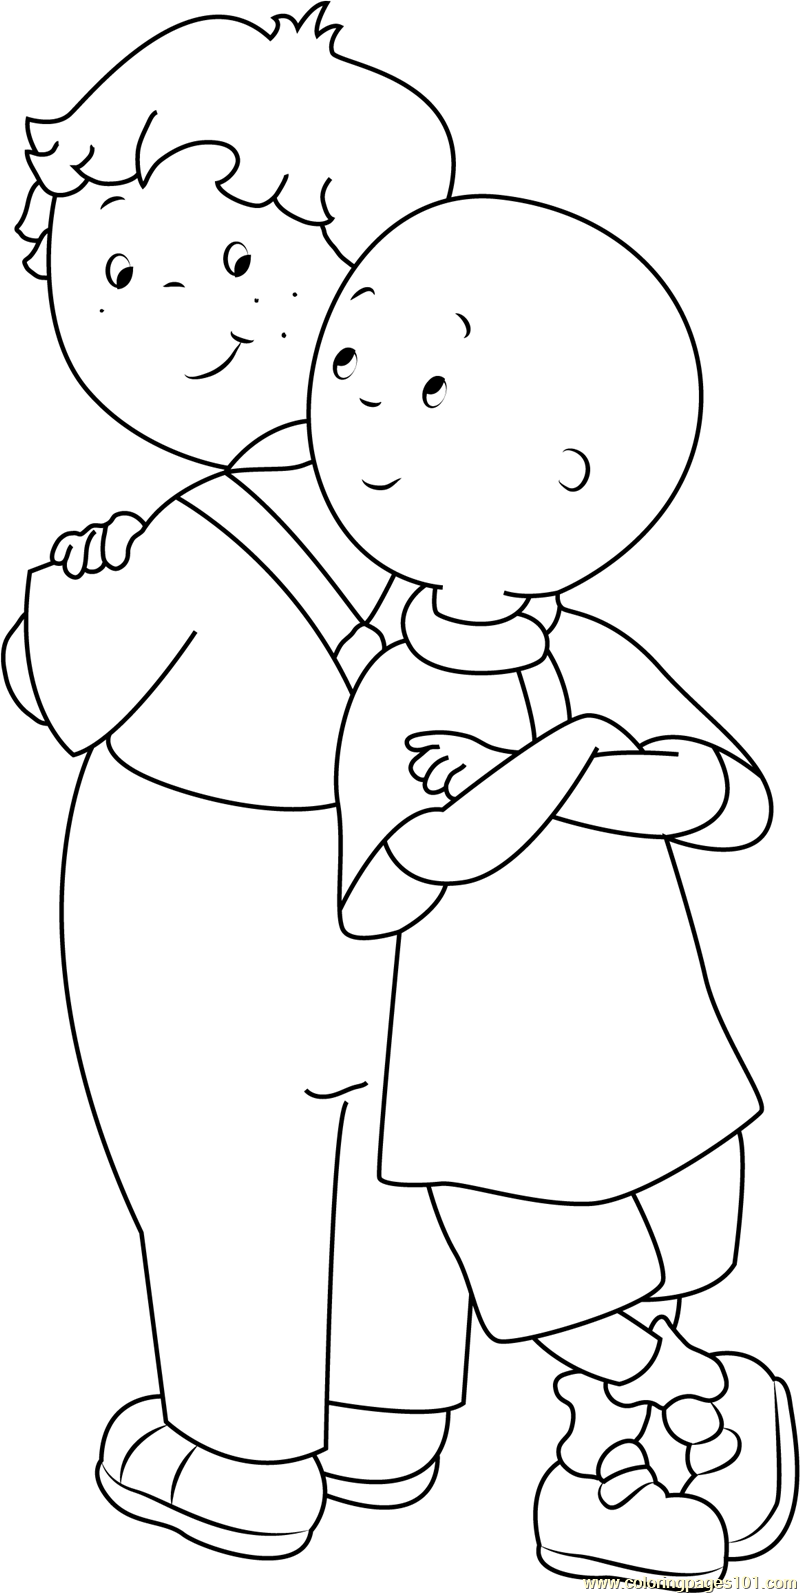 back coloring pages | Standing Back to Back Coloring Page - Free Caillou ...